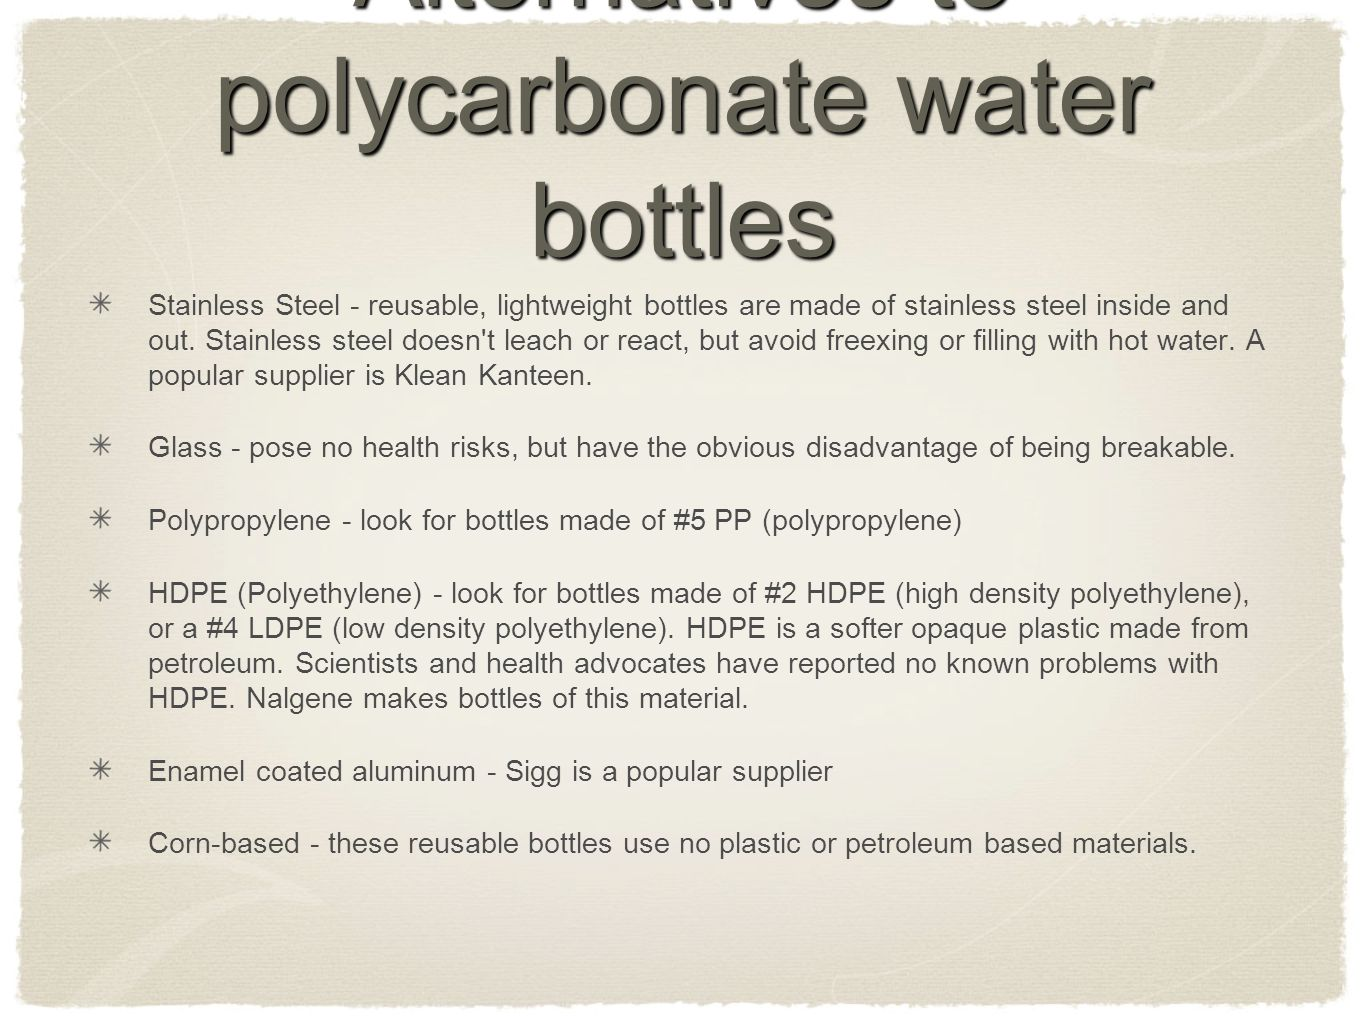 Alternatives to polycarbonate water bottles Stainless Steel - reusable, lightweight bottles are made of stainless steel inside and out.